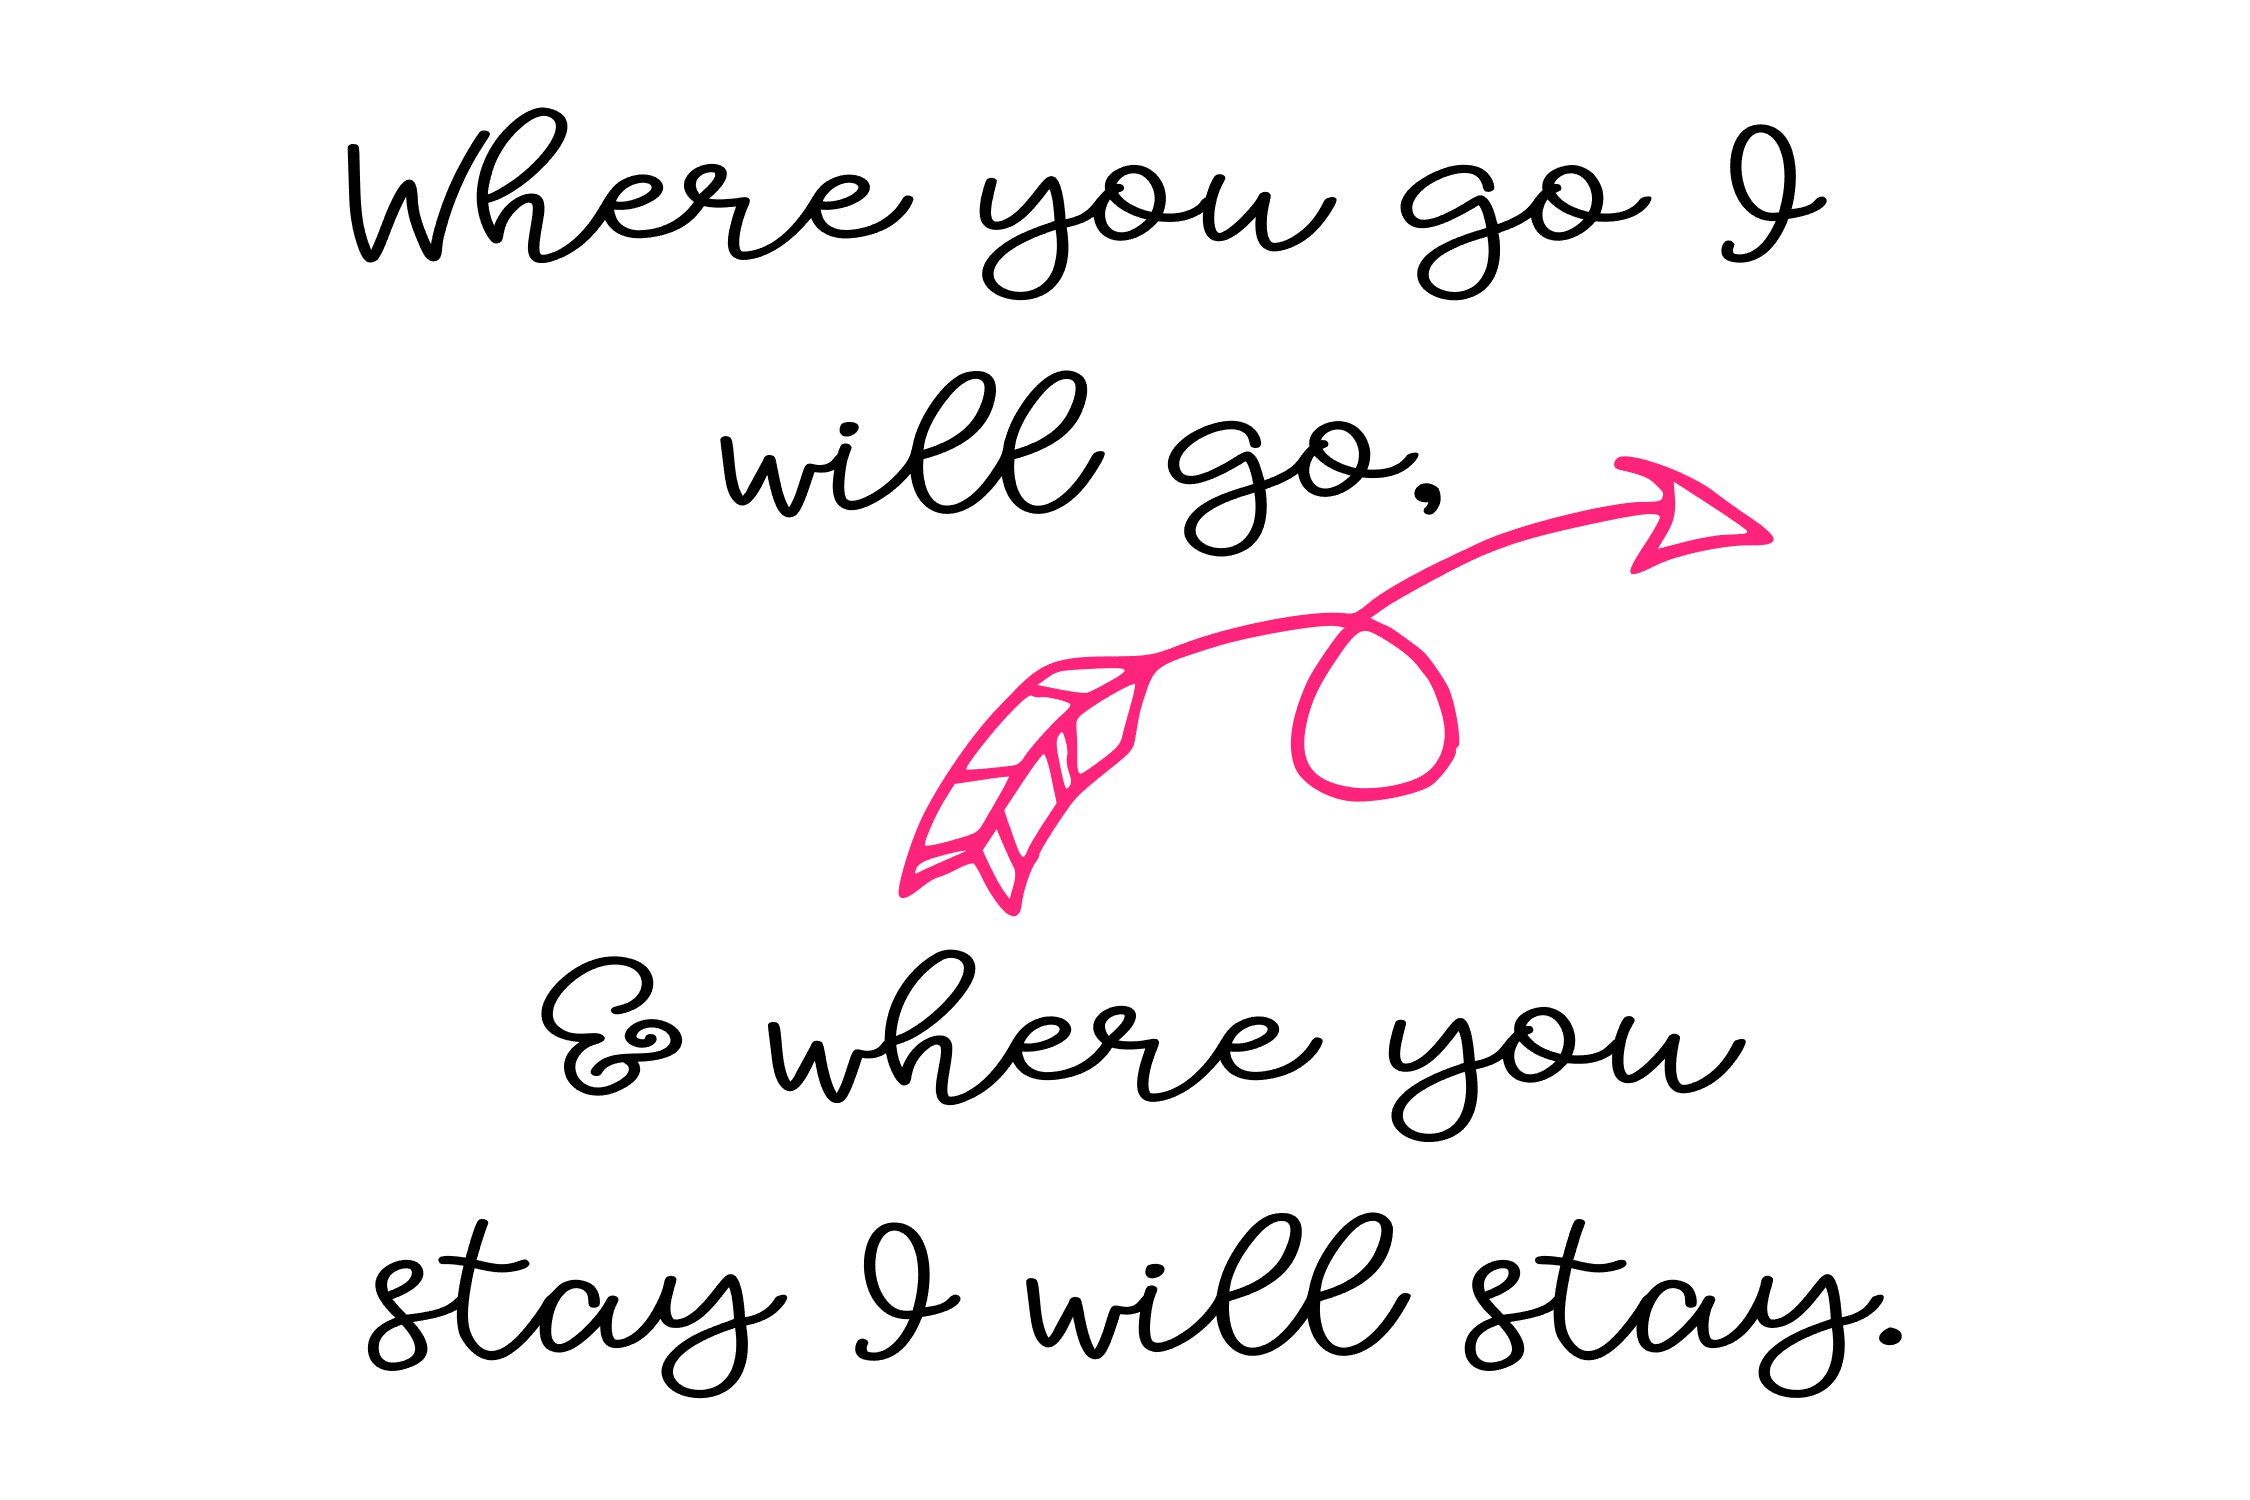 Where you go I will go - Scripture - SVG PNG EPS example image 2